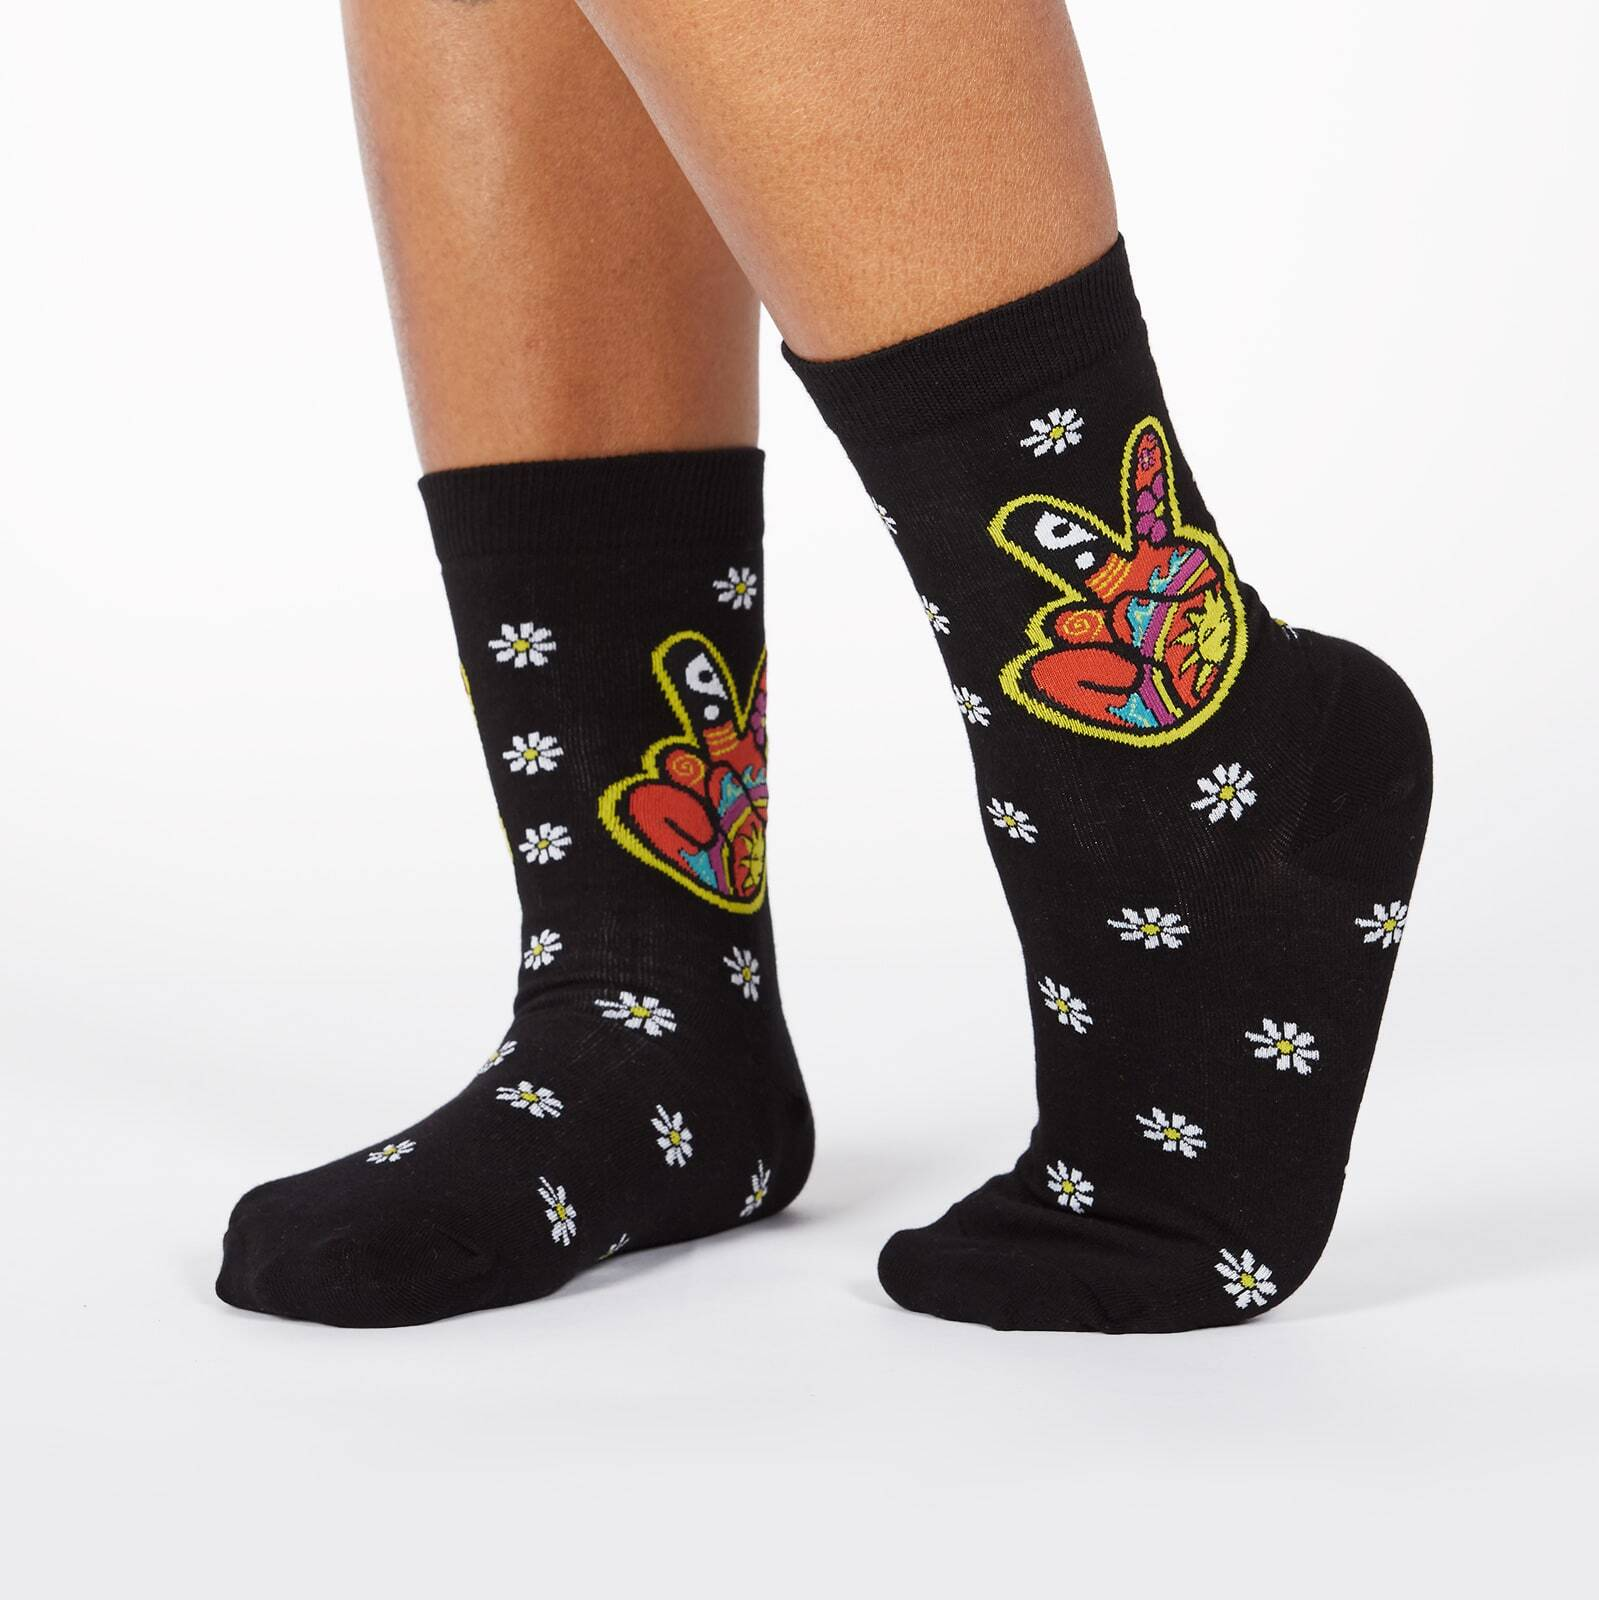 model wearing Dream of the '90s - Nostaglic 90's Kids Peace and Daisy Crew Socks Black - Women's